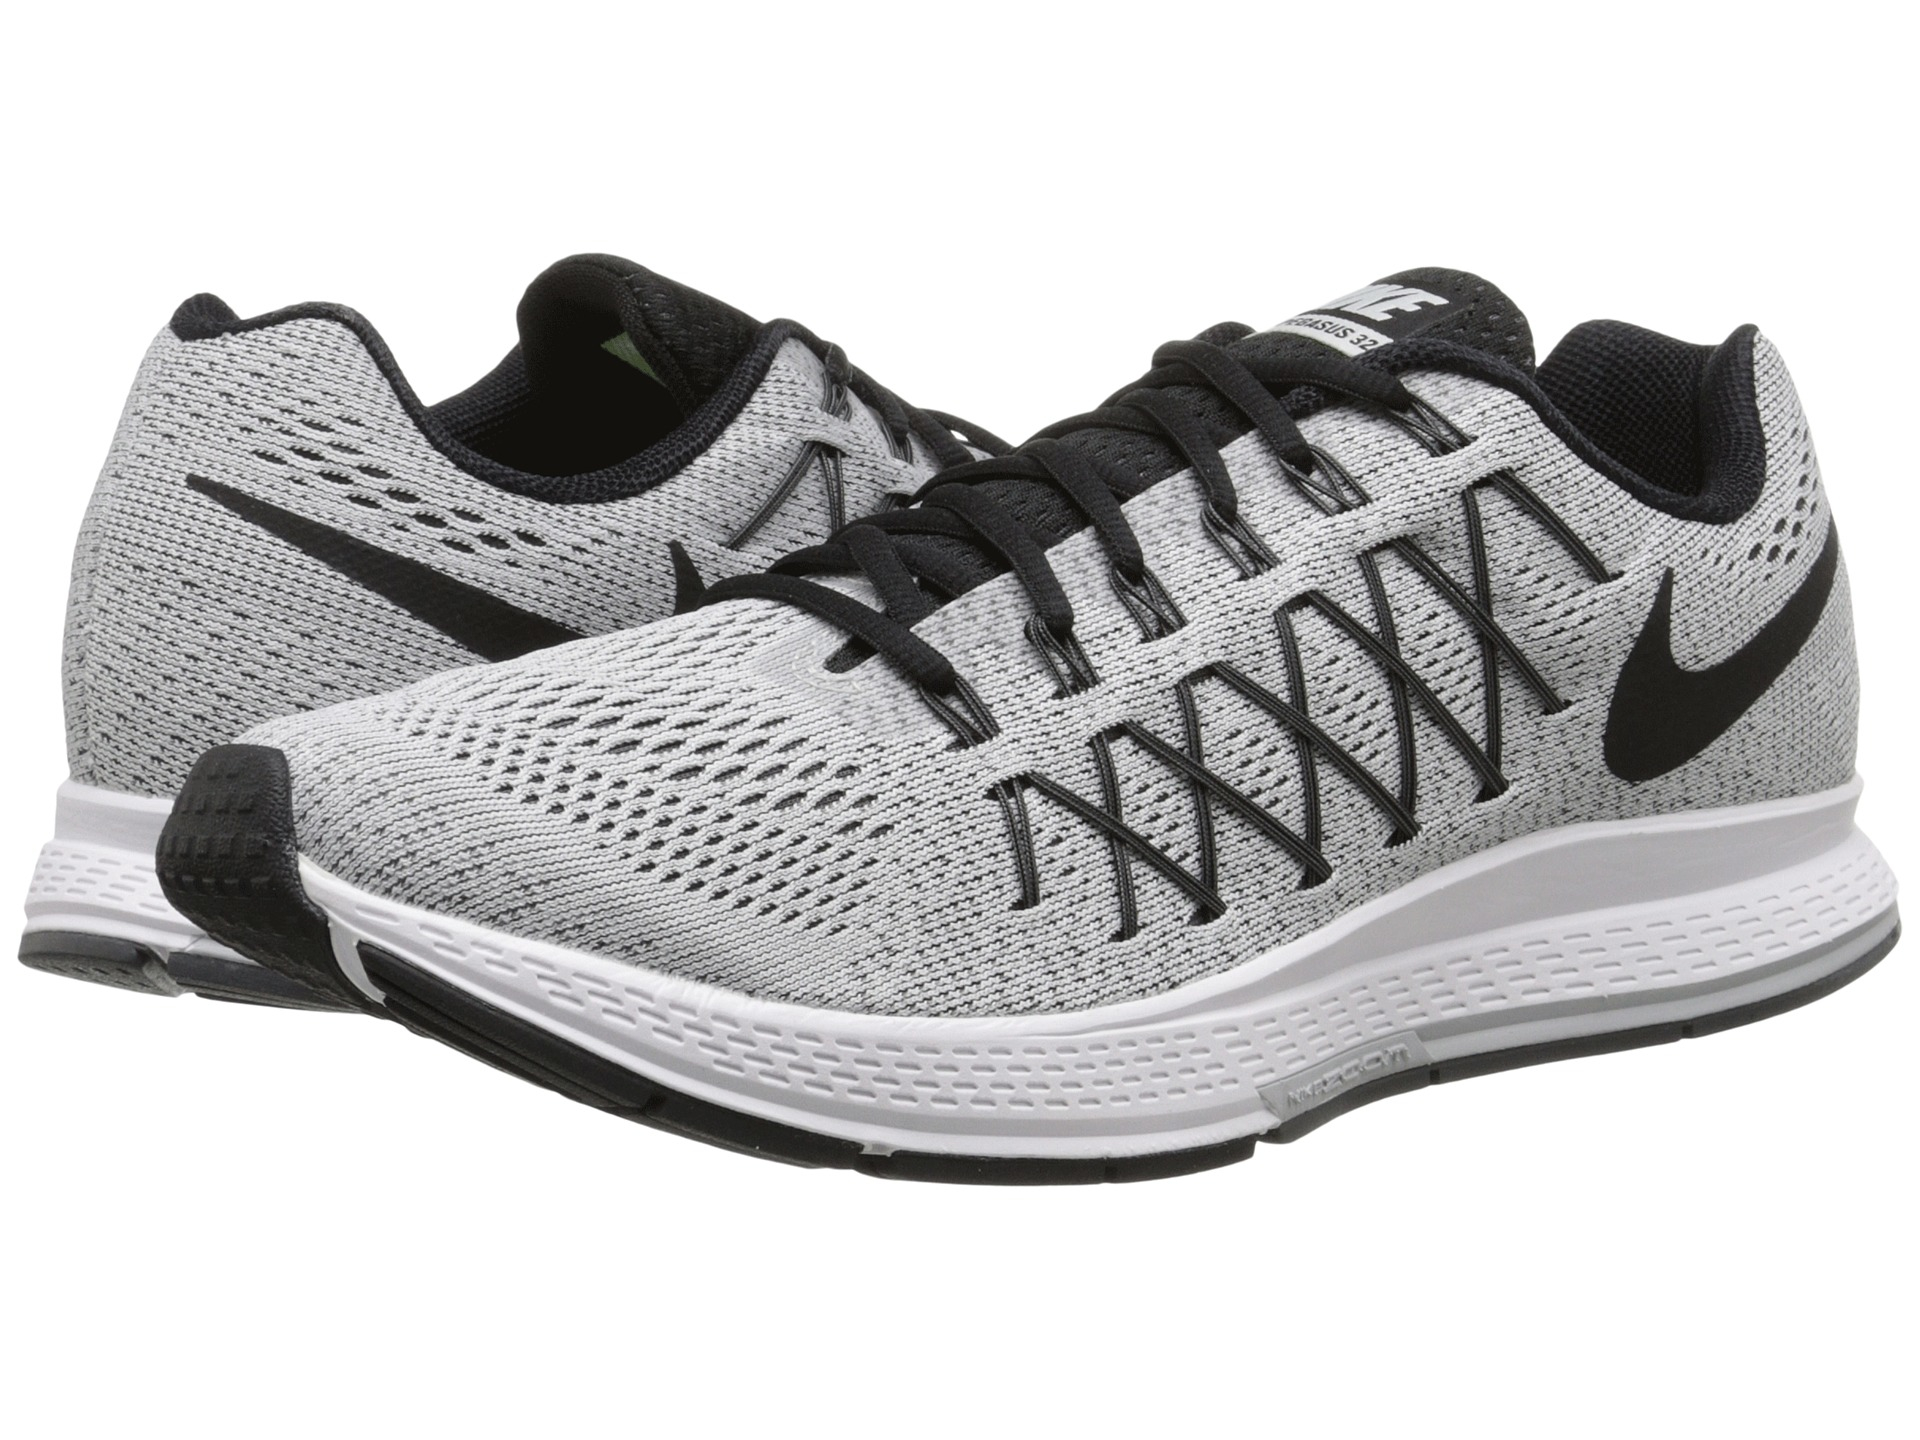 5b25106519df switzerland nike air zoom pegasus 32 mens running shoes cool grey blue  7712c 75c1f  netherlands gallery. previously sold at zappos mens nike  pegasus 51028 ...